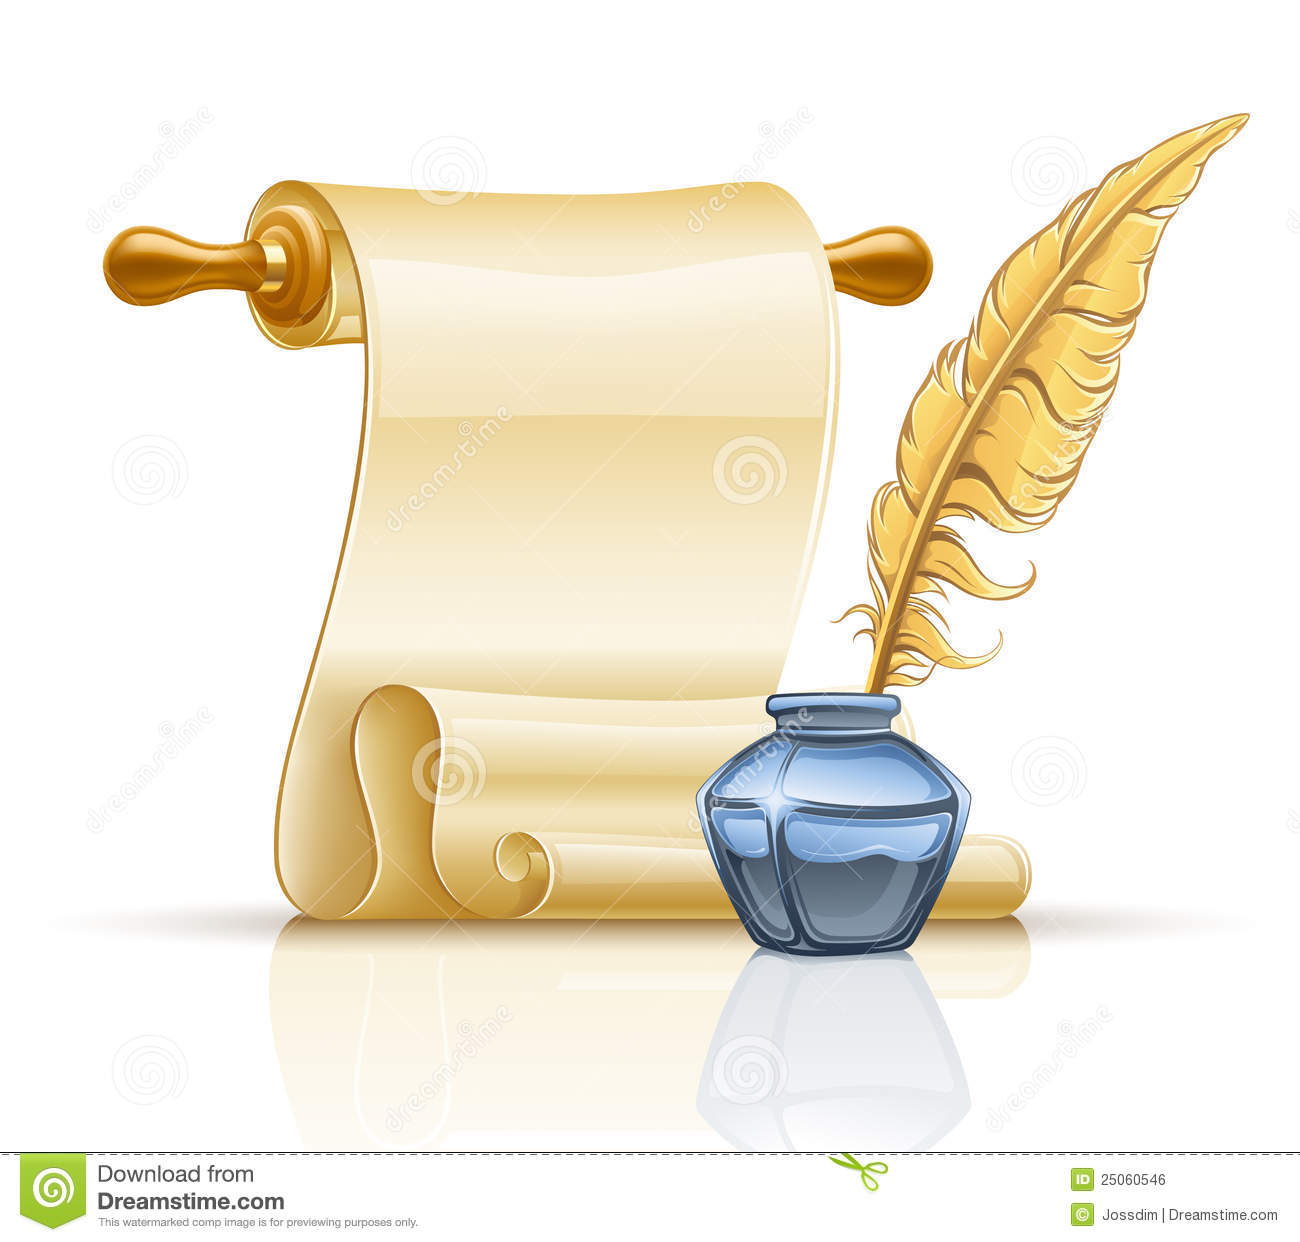 Royalty Free Stock Image Paper Scroll Feather Pen Ink Pot Image25060546 on Latest Parchment Writing Paper